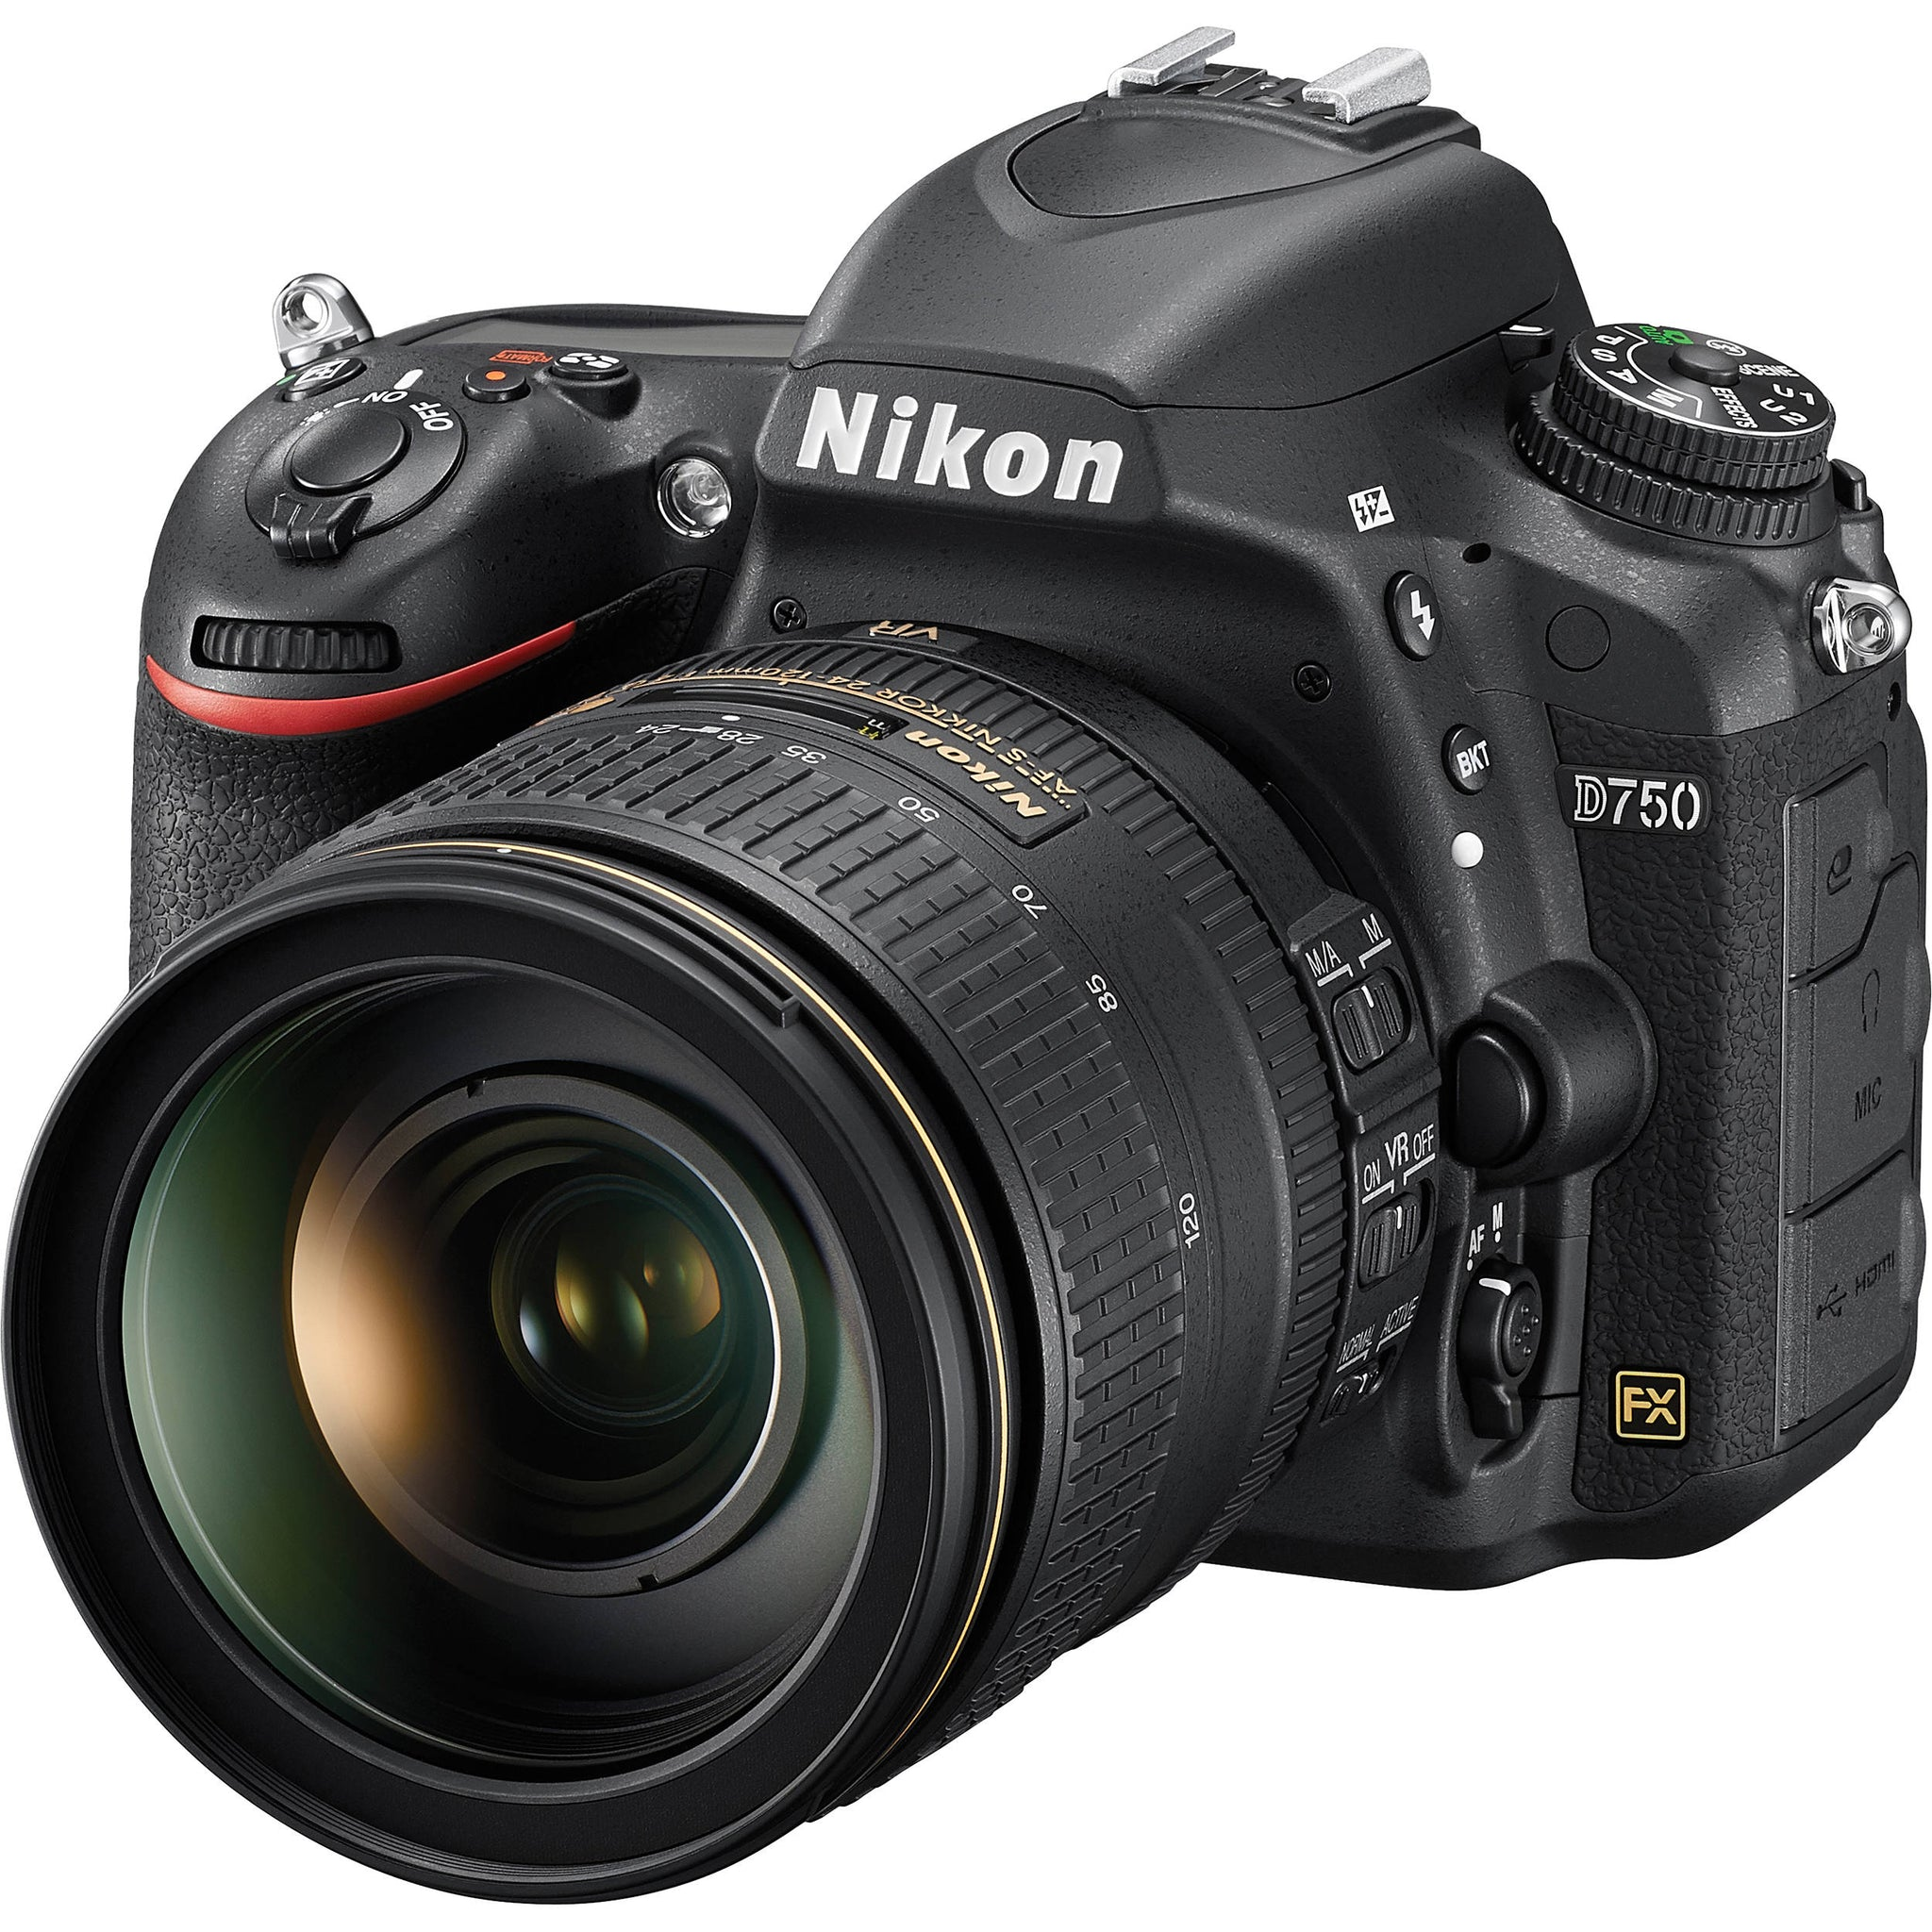 CAMERA DIGITAL NIKON D750 COM LENTE 24-120MM